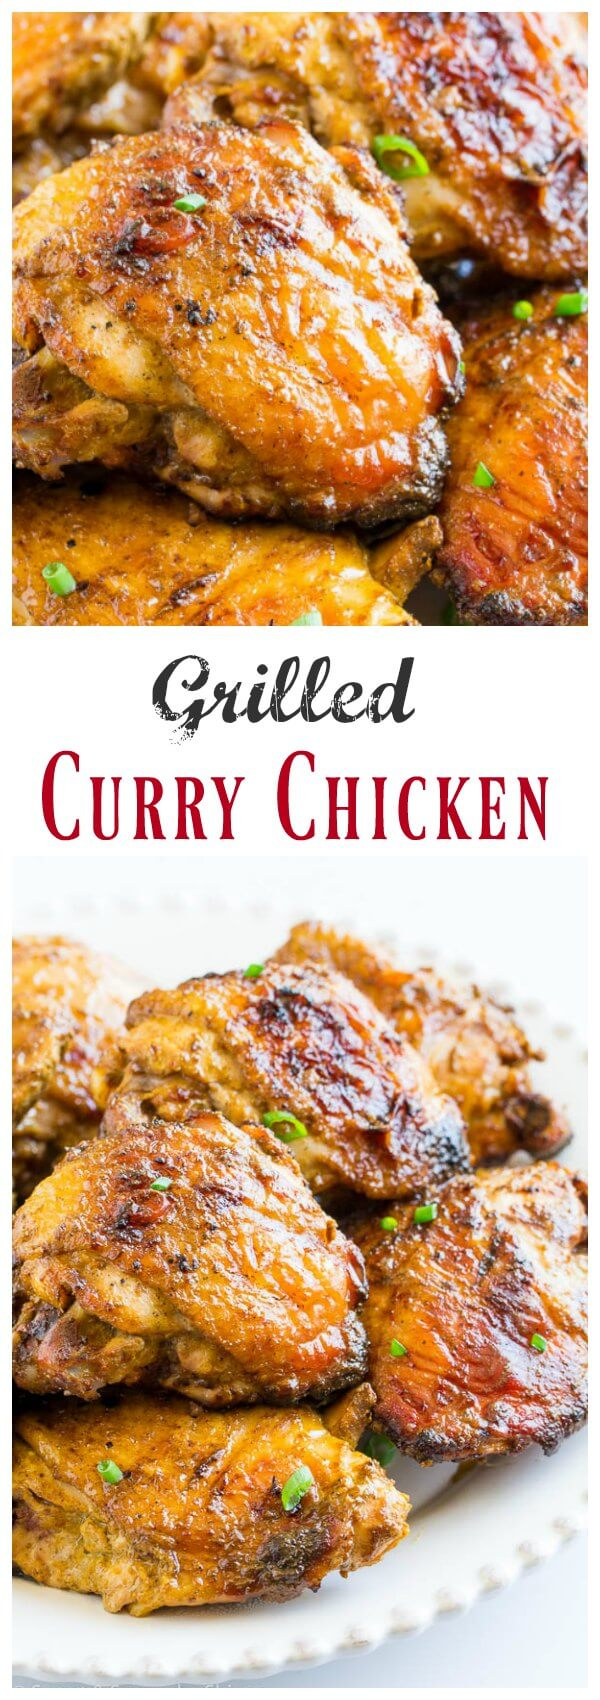 These grilled curry chicken thighs are juicy and flavorful. And it requires minimal hands-on time and only 4 ingredients!